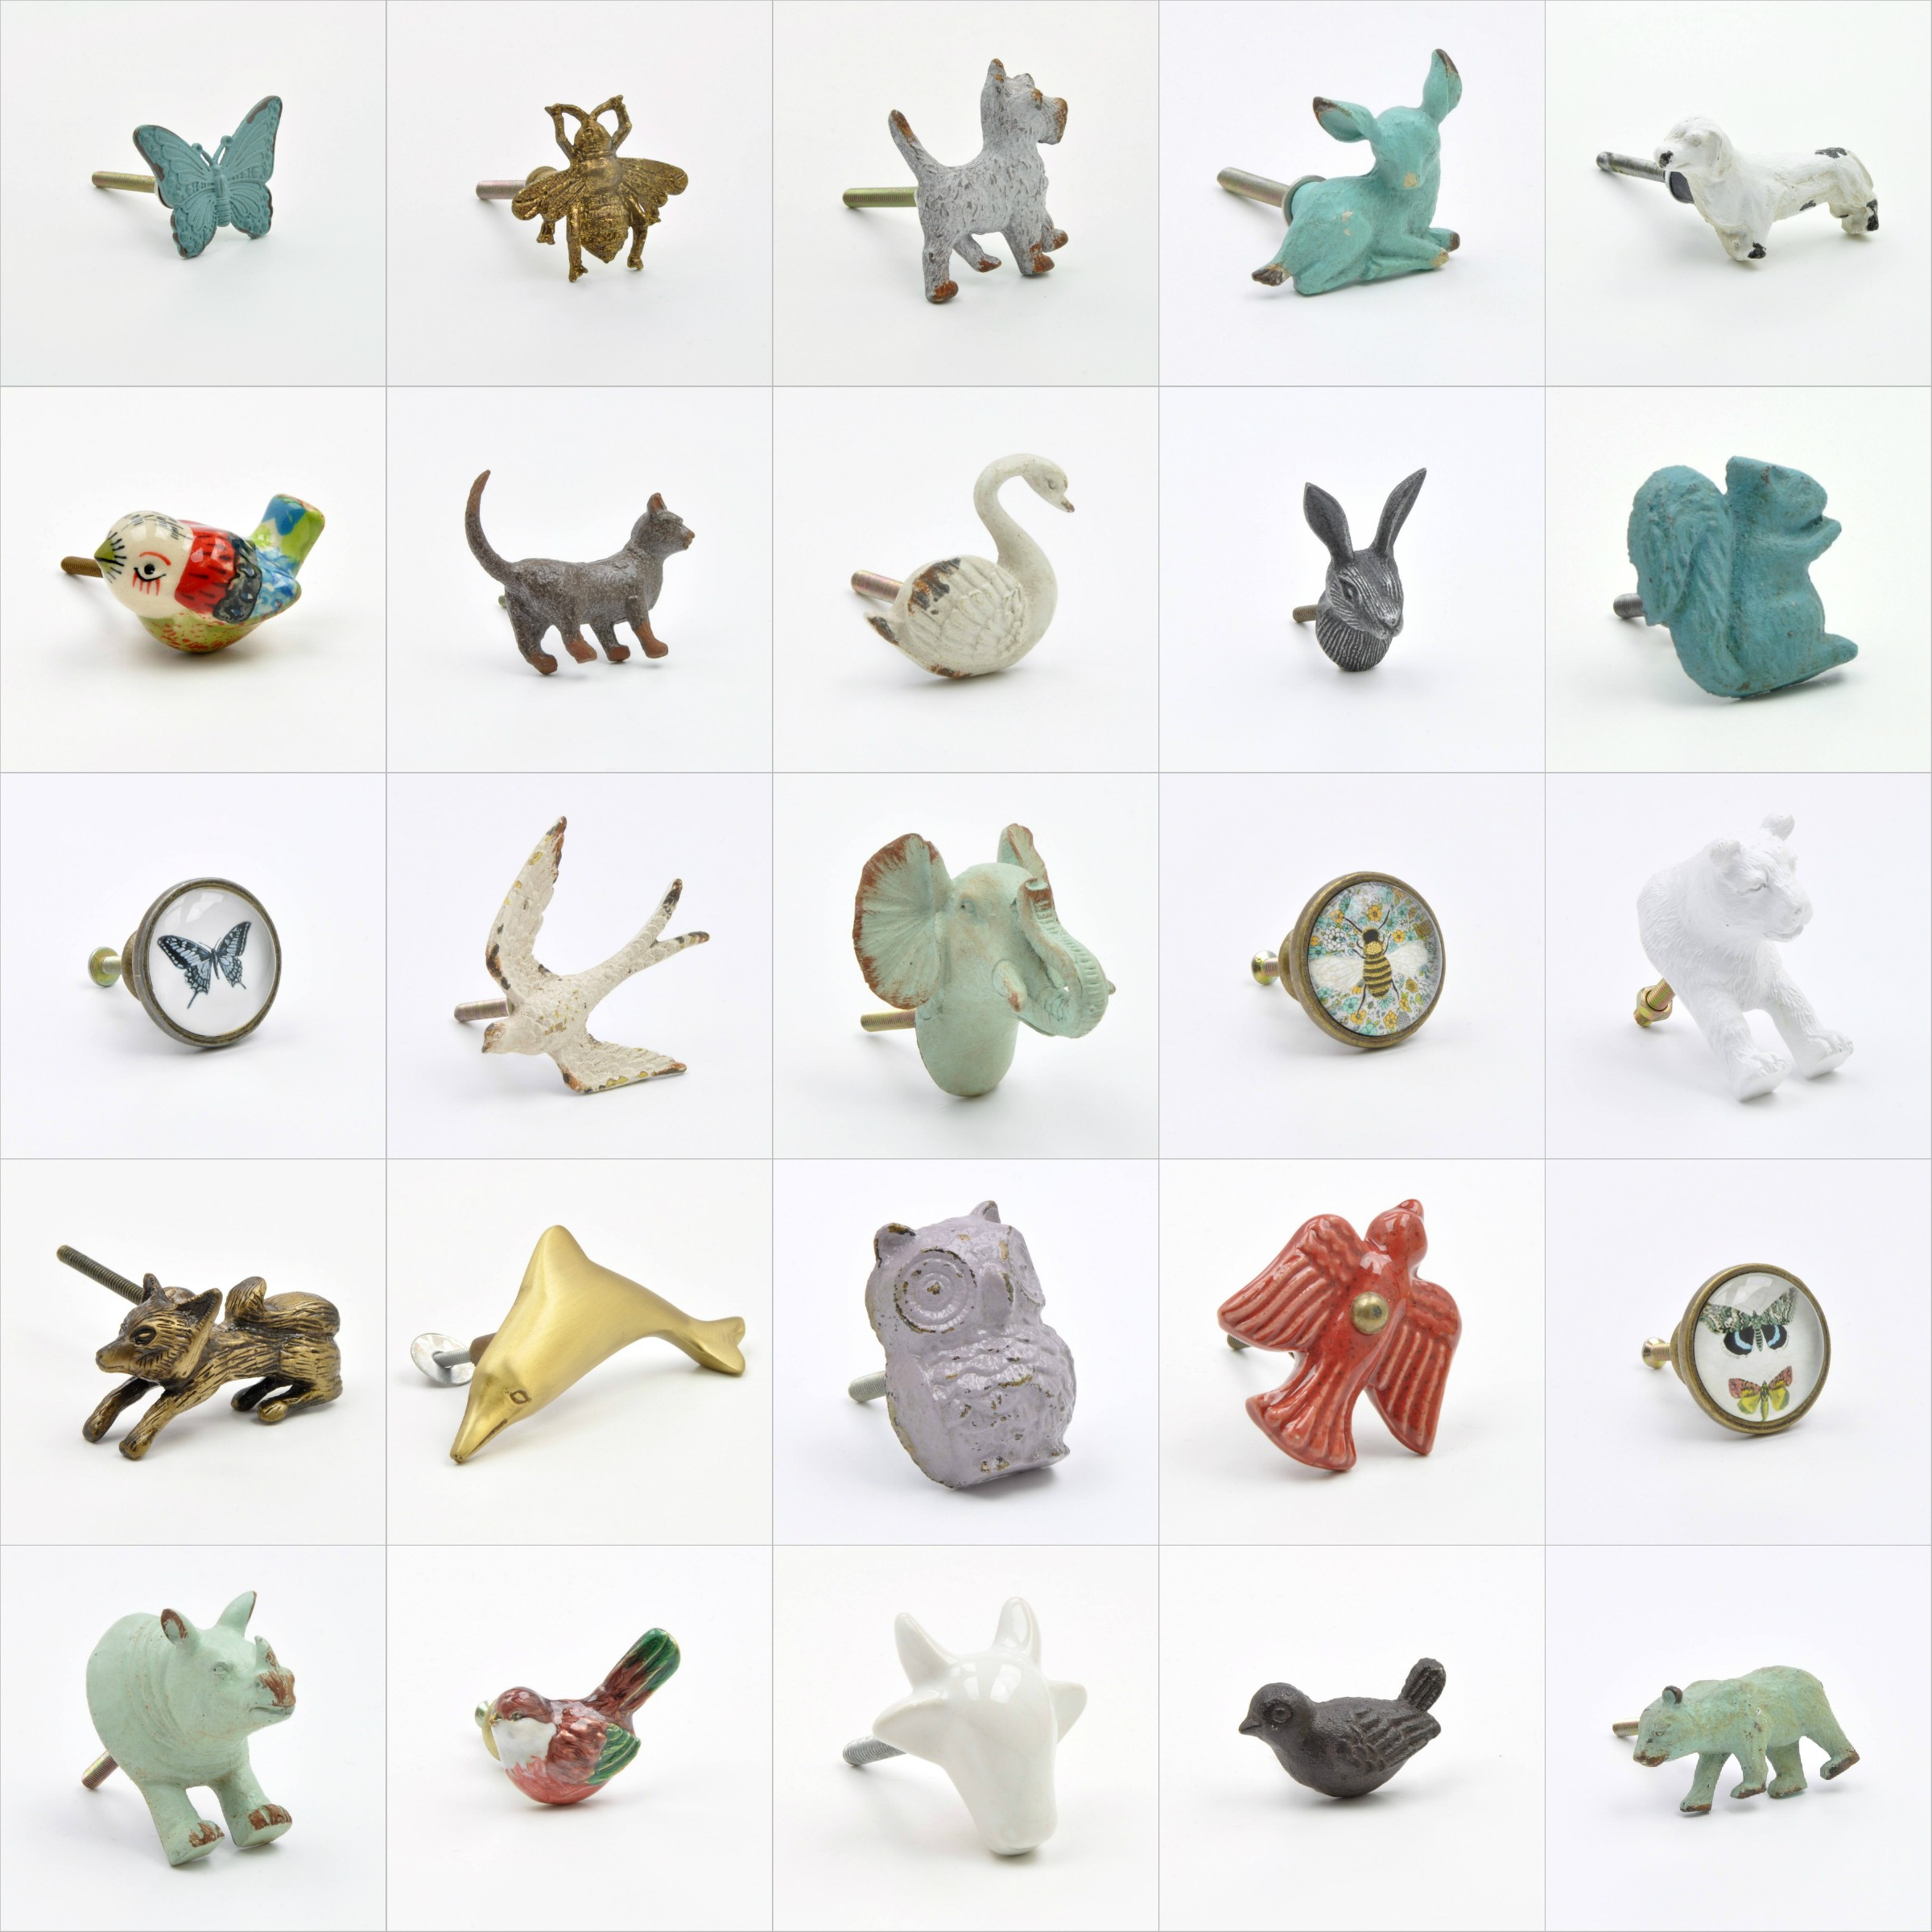 knobs from kitchen pull wardrobe drawer item hardware pulls metal dreld handles home cabinet in door furniture antique cupboard knob handle and